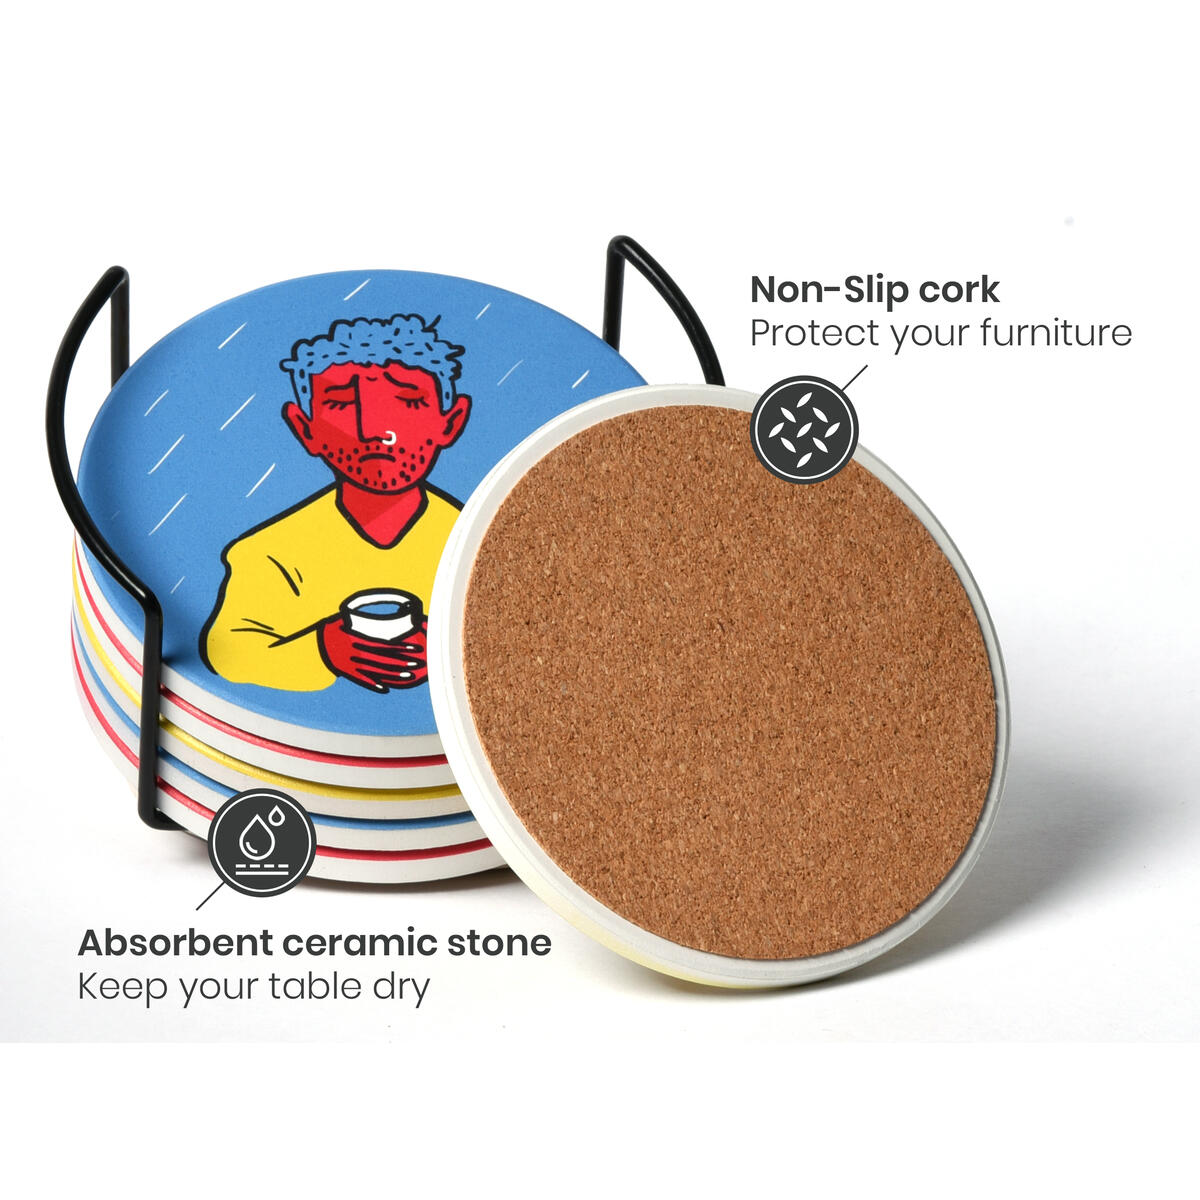 Coasters for Drinks (6pcs) - Funny Ceramic Coasters with Unique Mood Artwork - Absorbent Coasters with Holder - Stone Coaster Set by JoeDeco